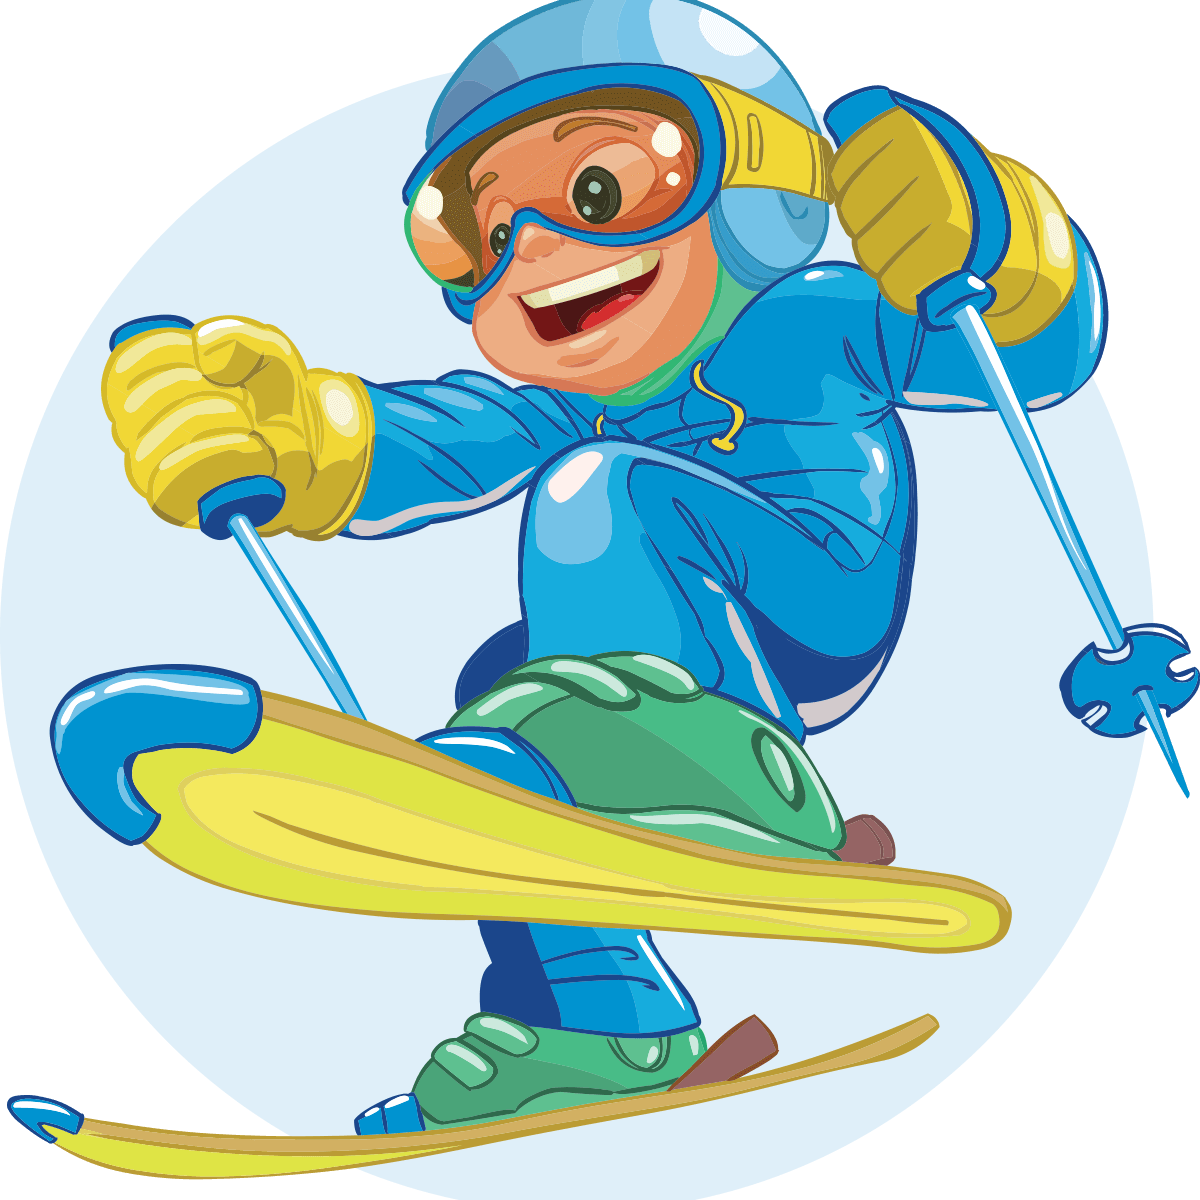 Ski clipart blue. Free cross country skiing